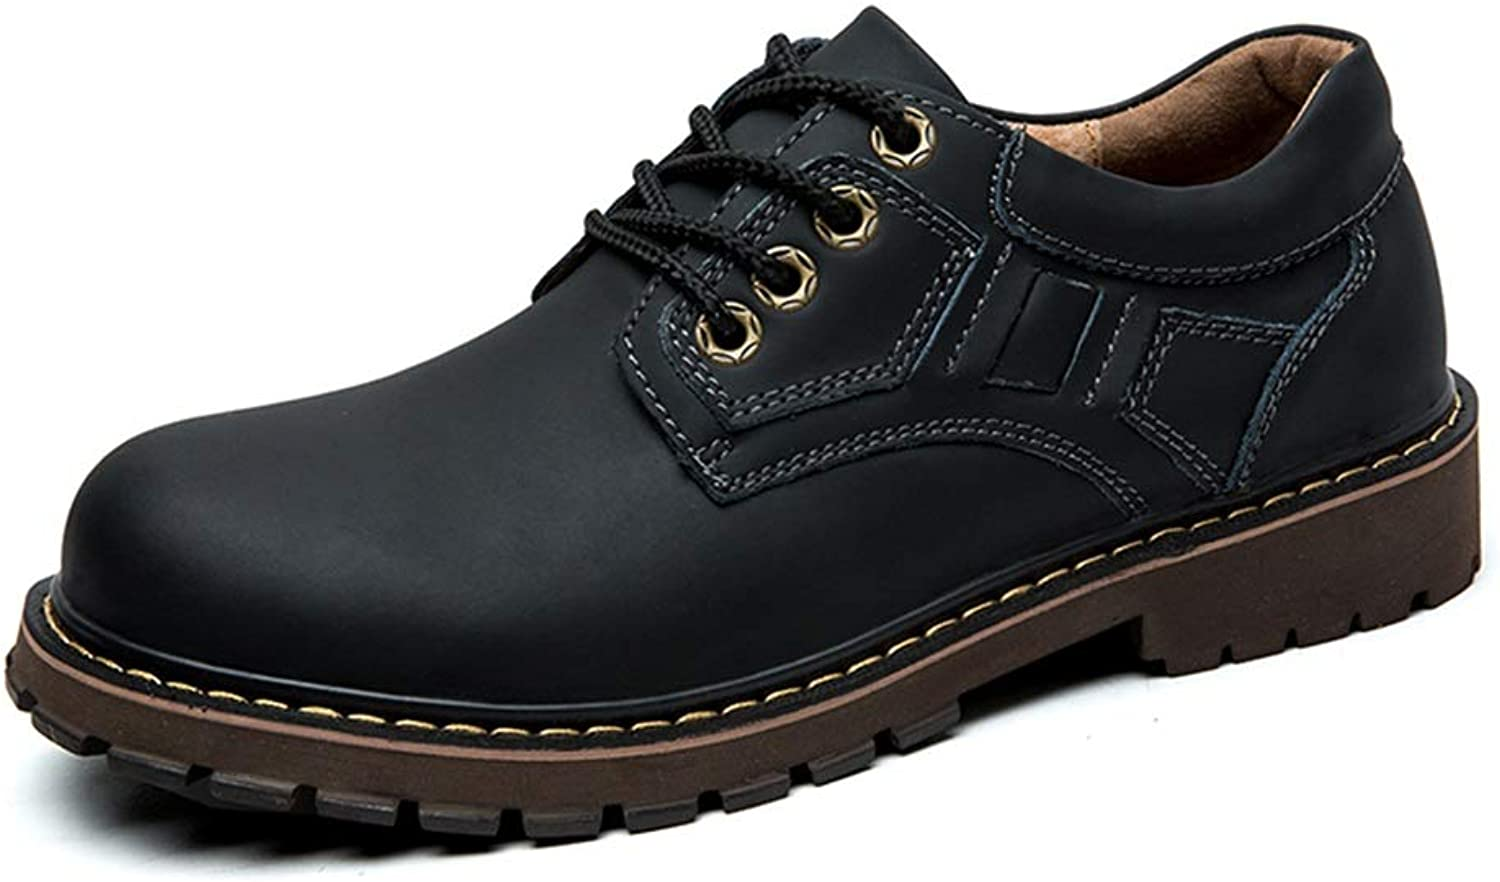 e934d149d52e Sdxgsfdhgdf Comfortable Men's Oxford shoes Men's Formal shoes with ...